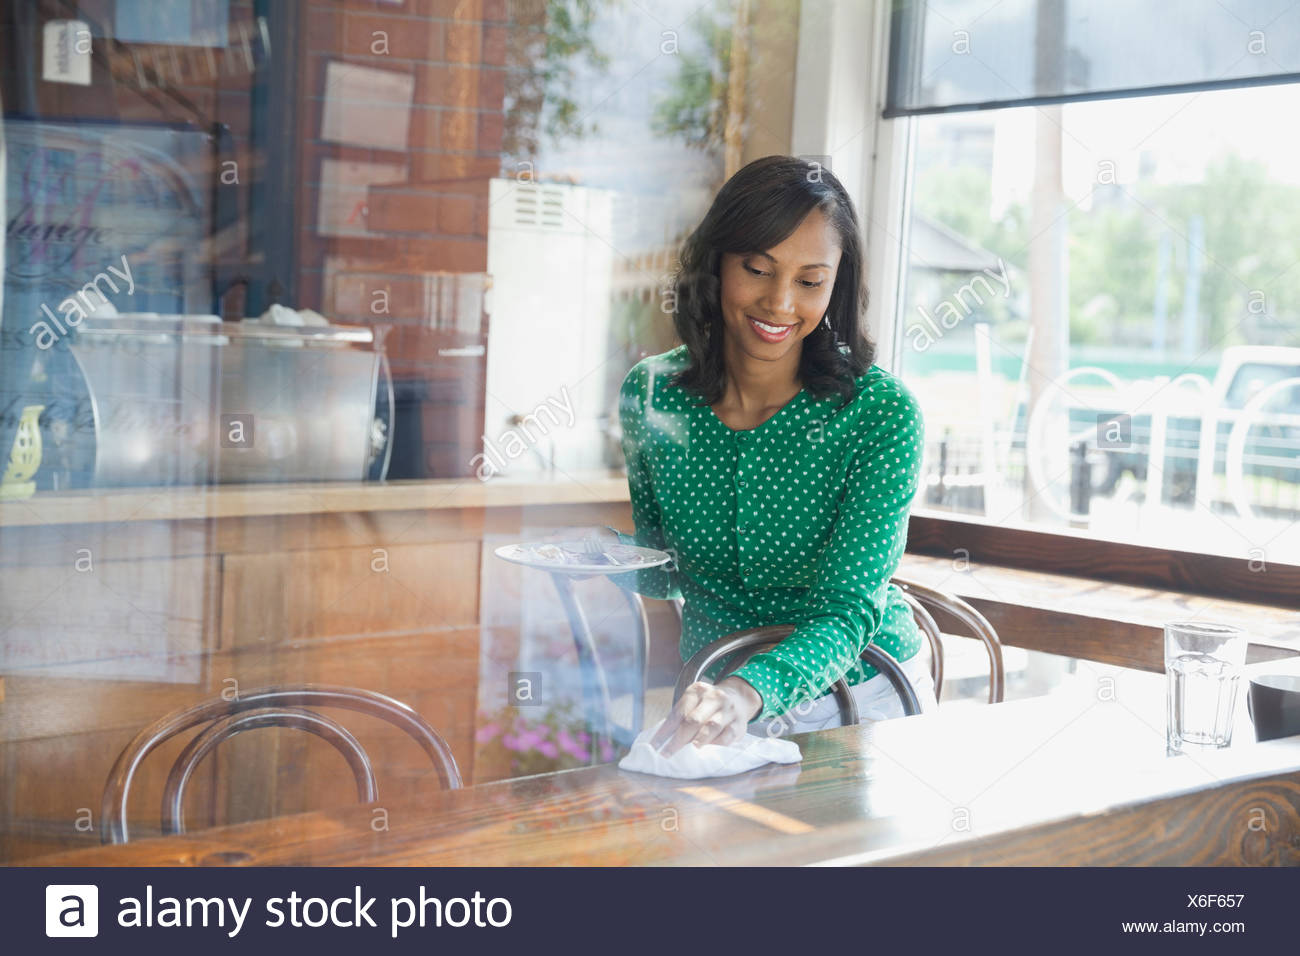 Smiling waitress cleaning table in cafe - Stock Image